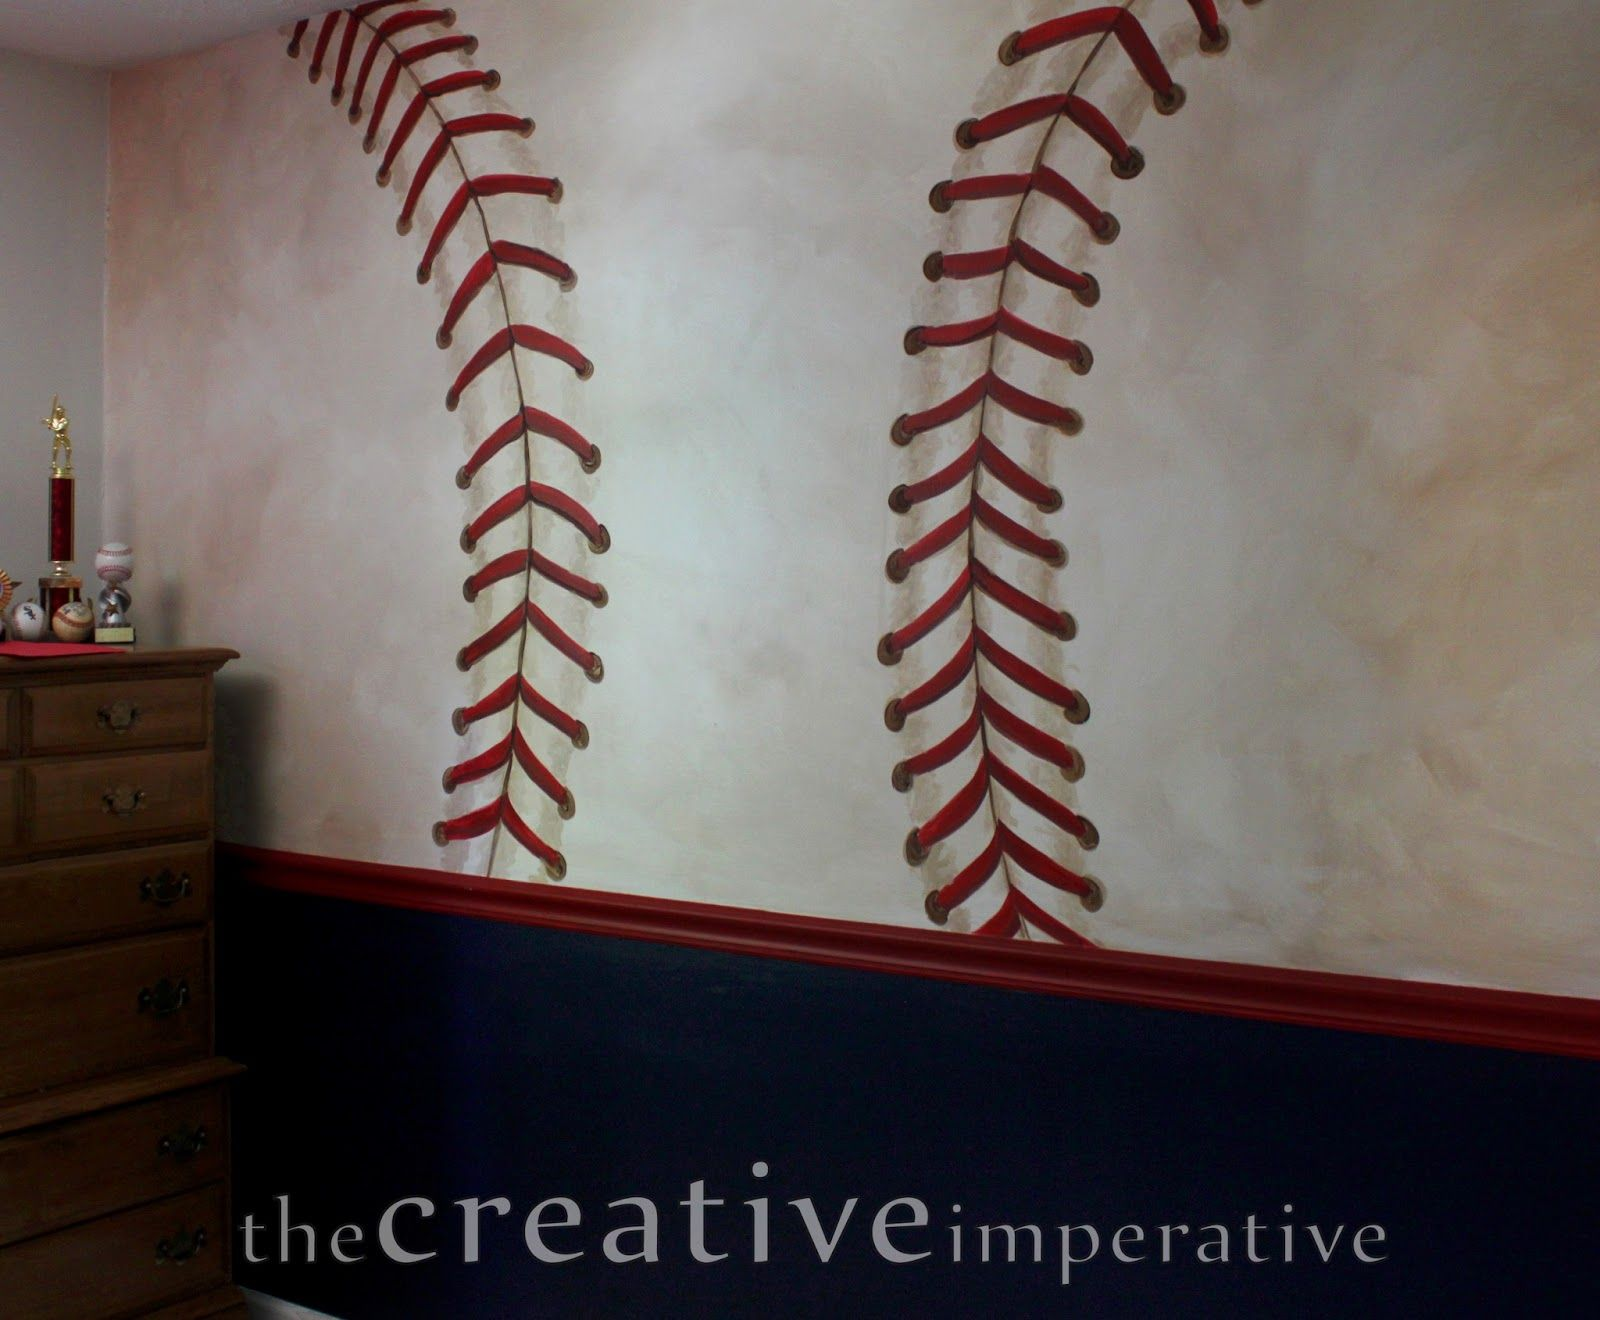 For Q's room: The Creative Imperative: Some Yankees and Nationals Baseball  Murals